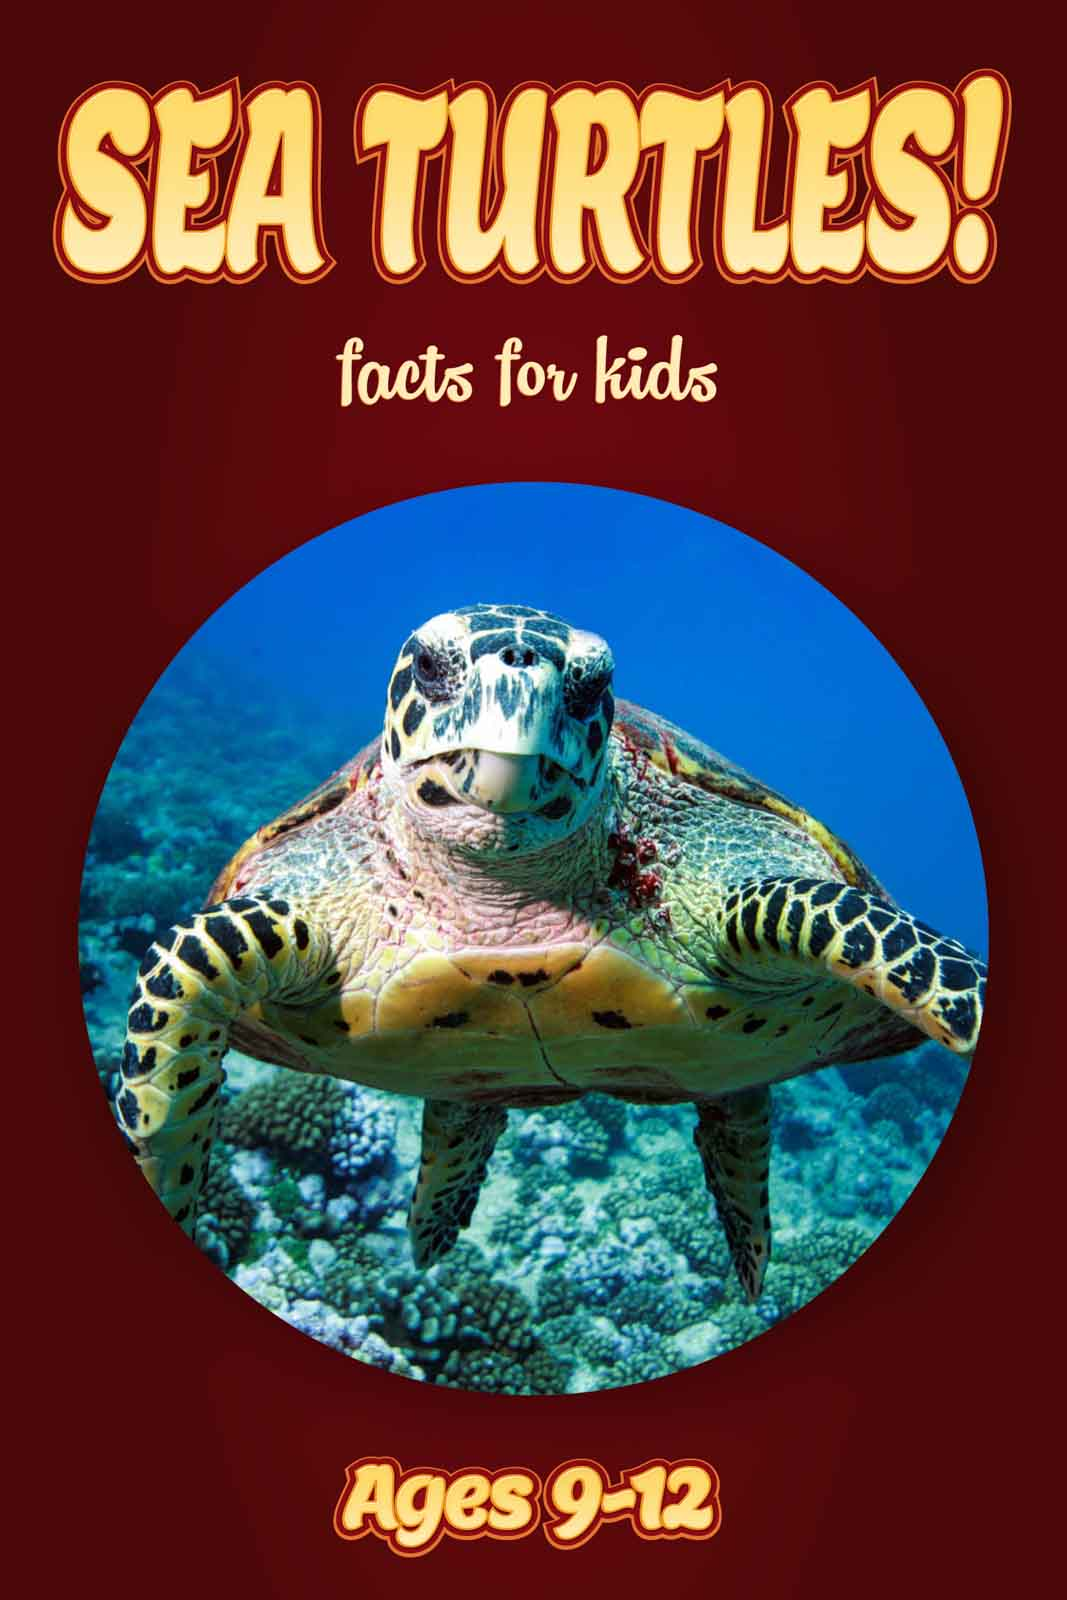 giraffe facts for kids kids nonfiction book clouducated ages